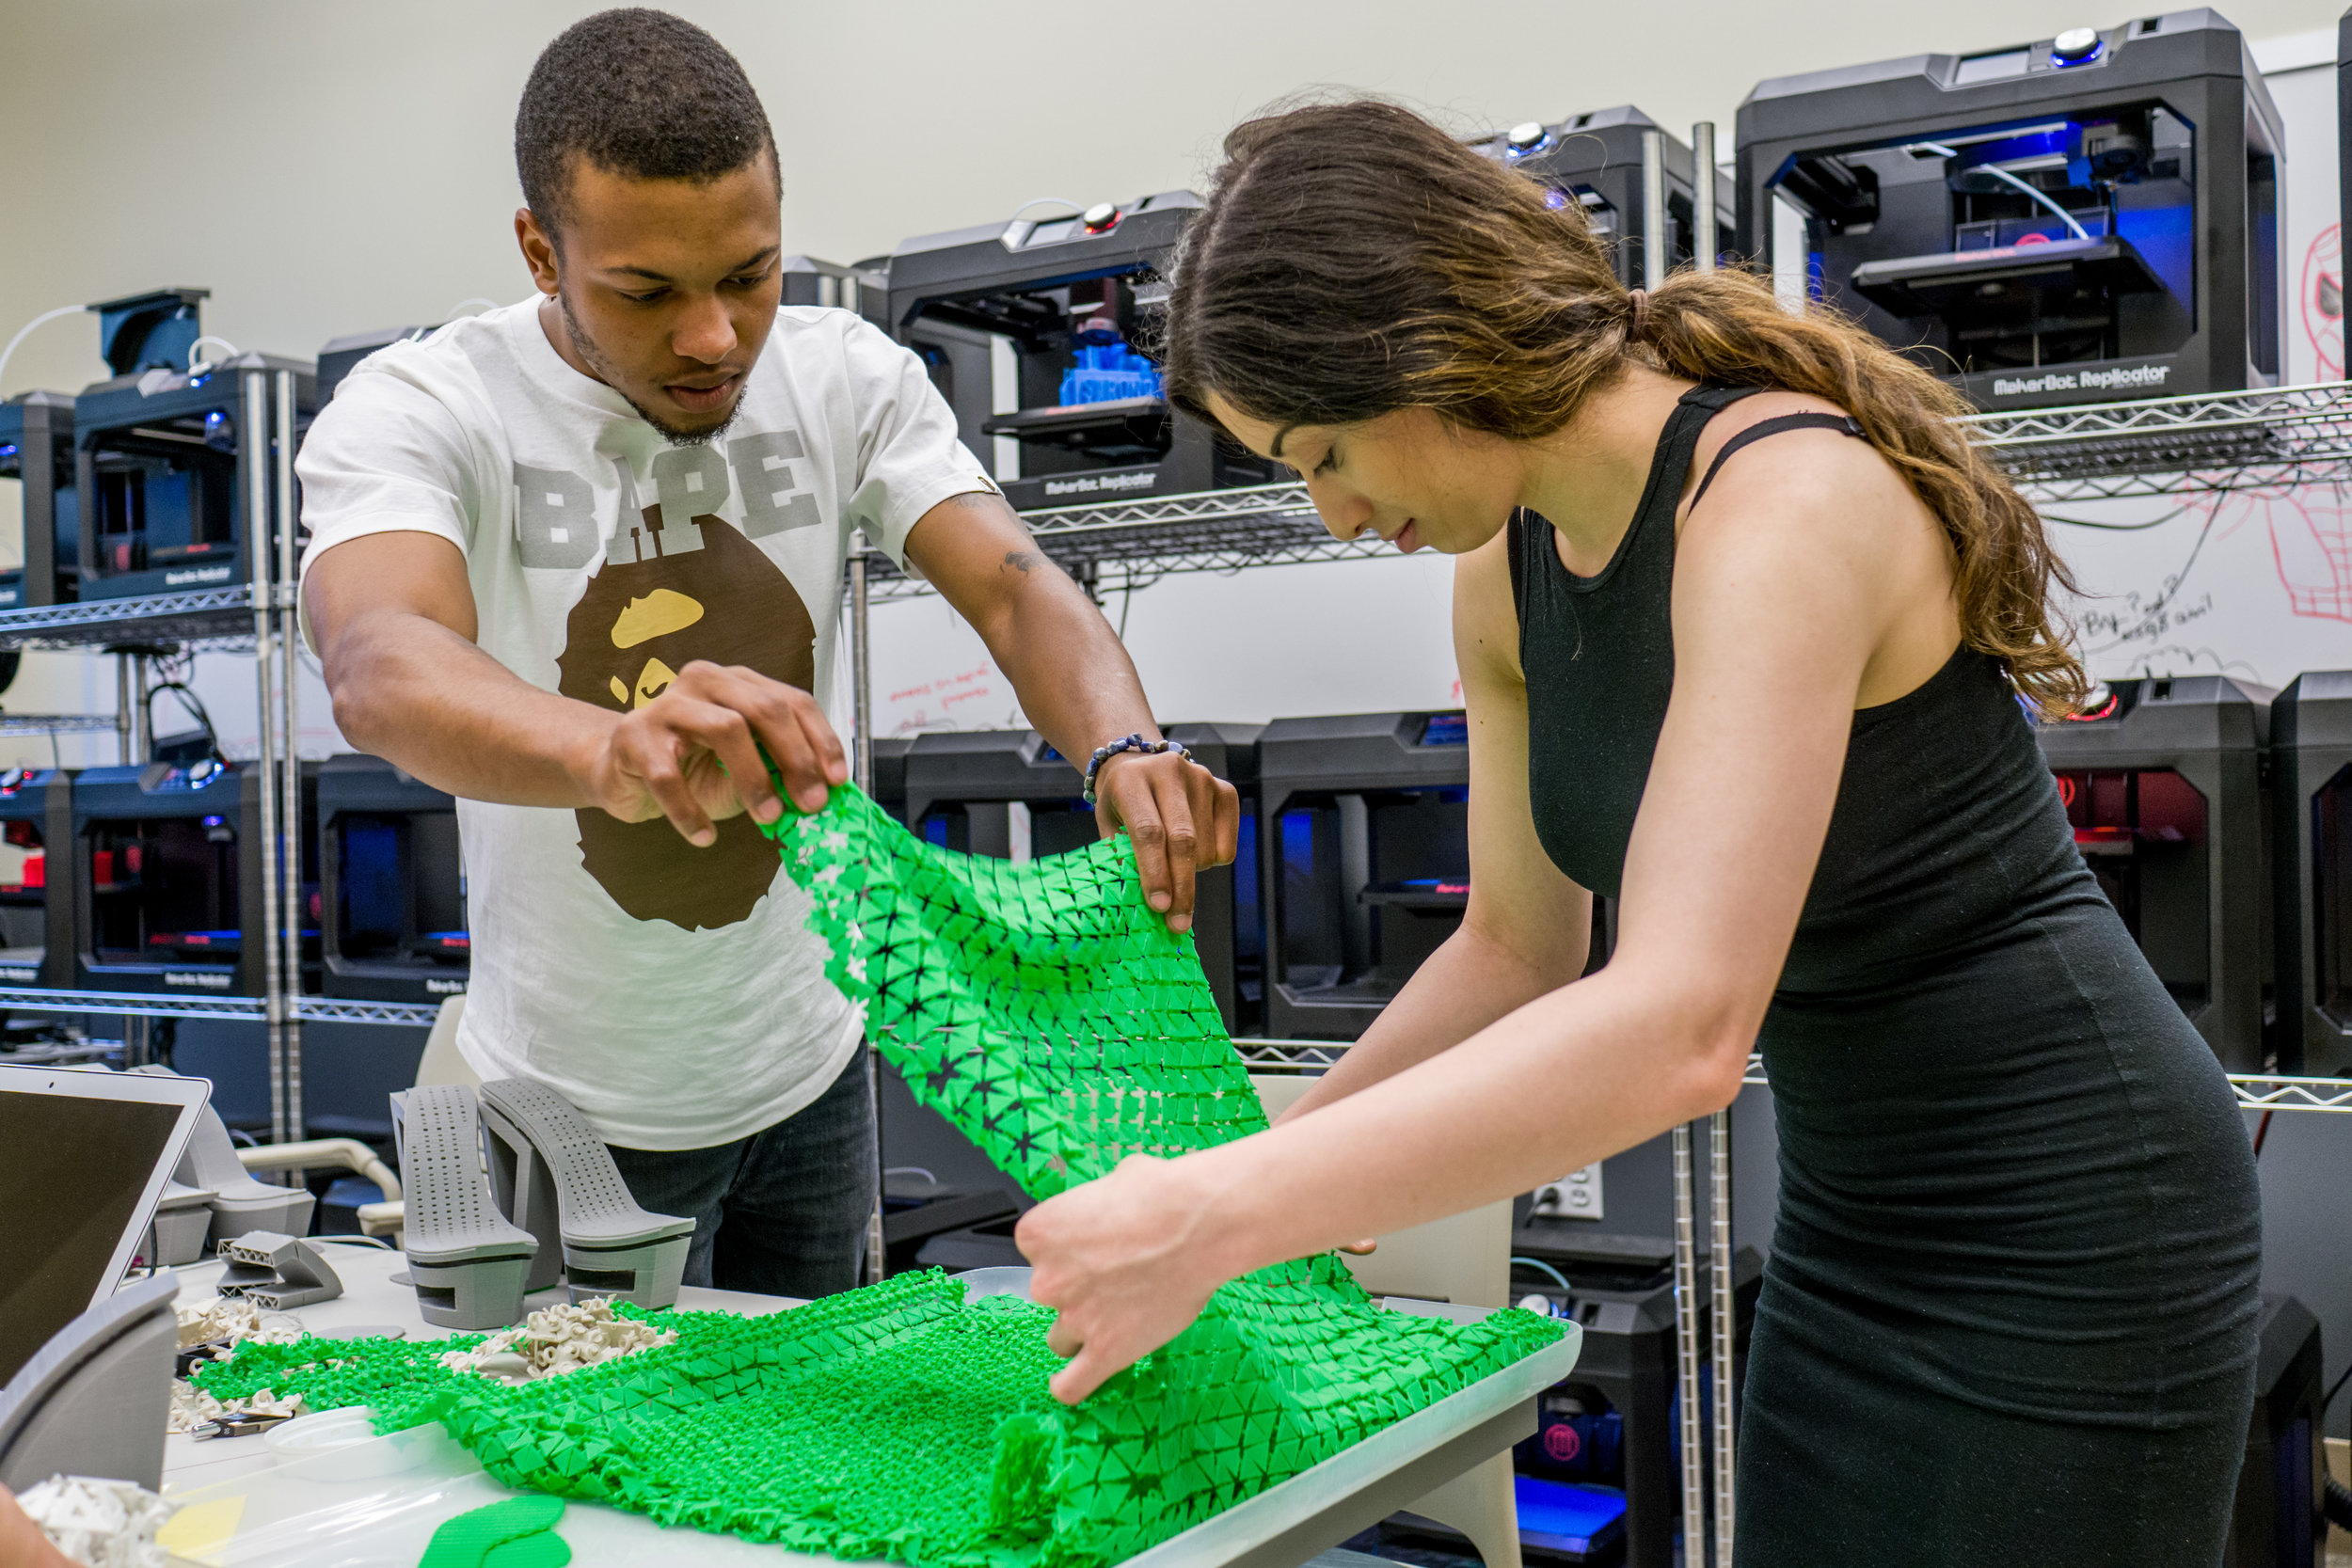 Altarik & Natalie assemble the sheets of 3D Printed pieces. (Photo by Mike Peters)